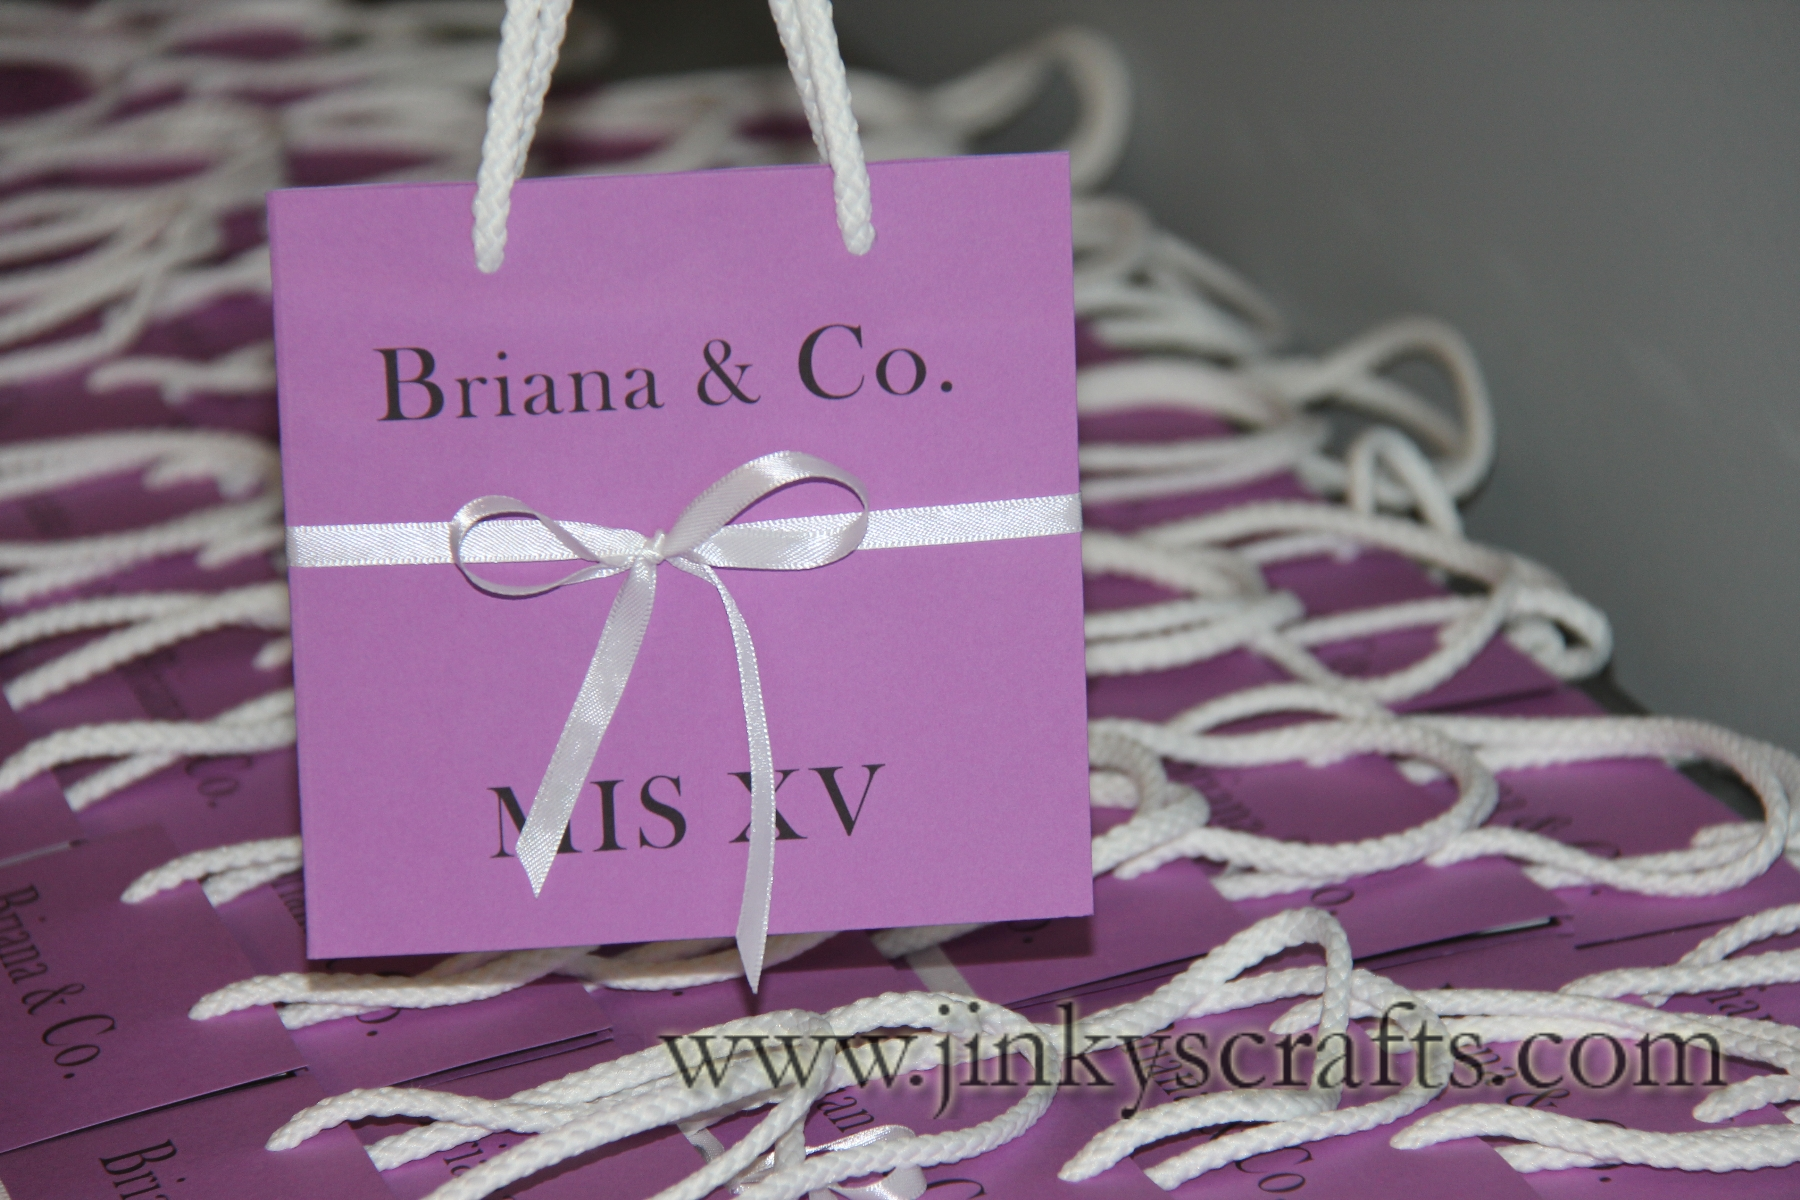 Quinceanera Invitation- Bag Style - Jinkys Crafts